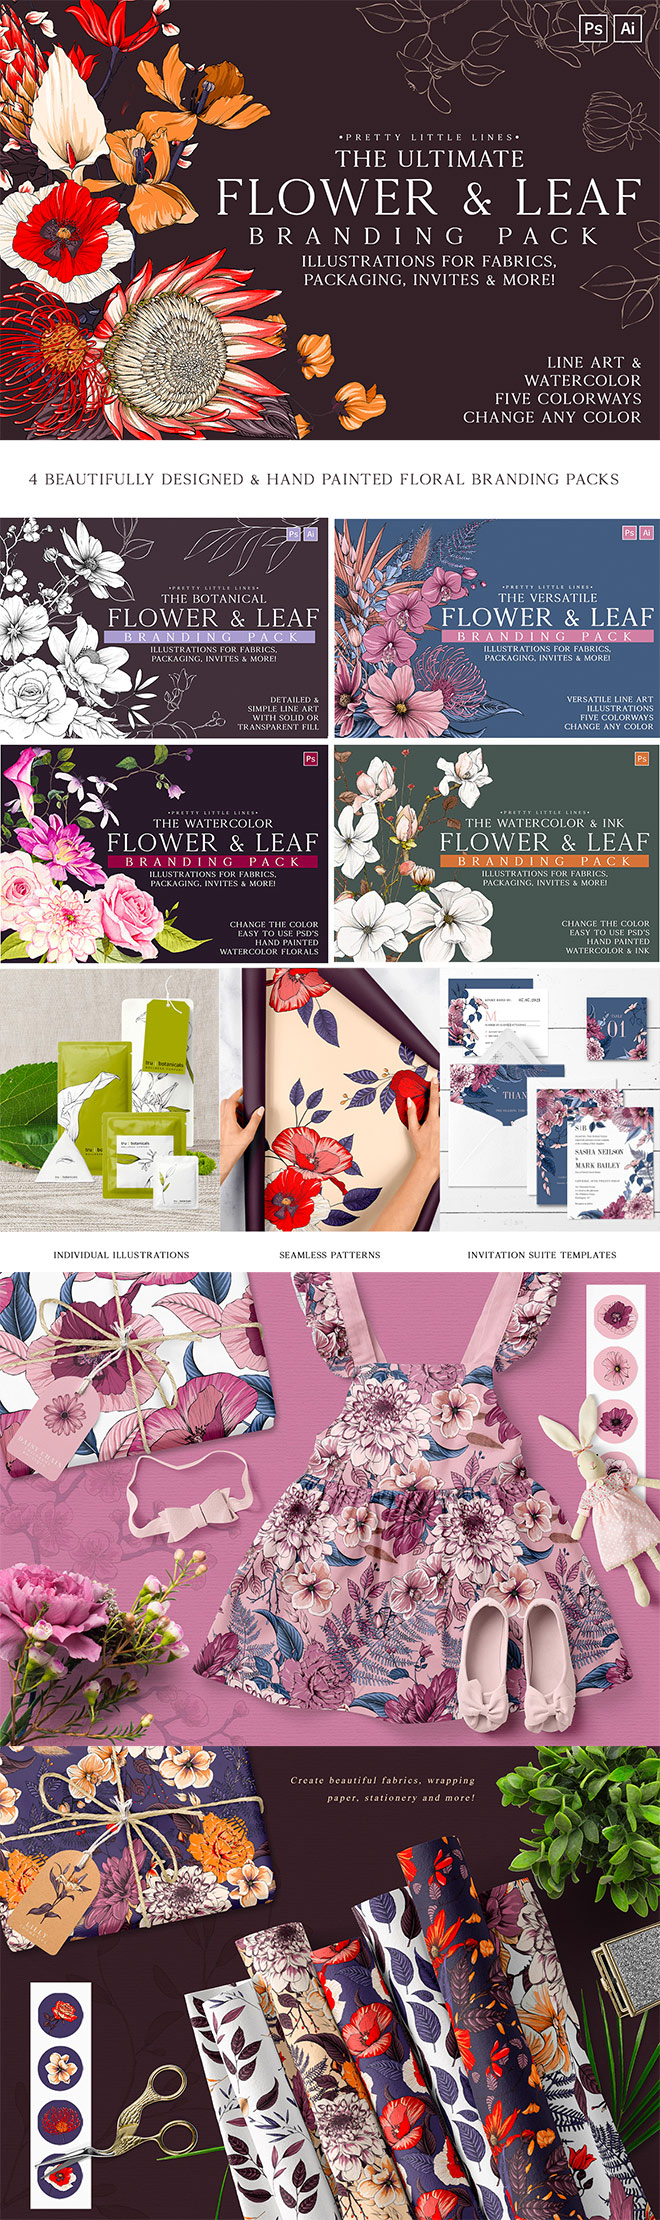 flower leaf - Huge Discounts on Exclusive New Products at the Design Cuts Birthday Event